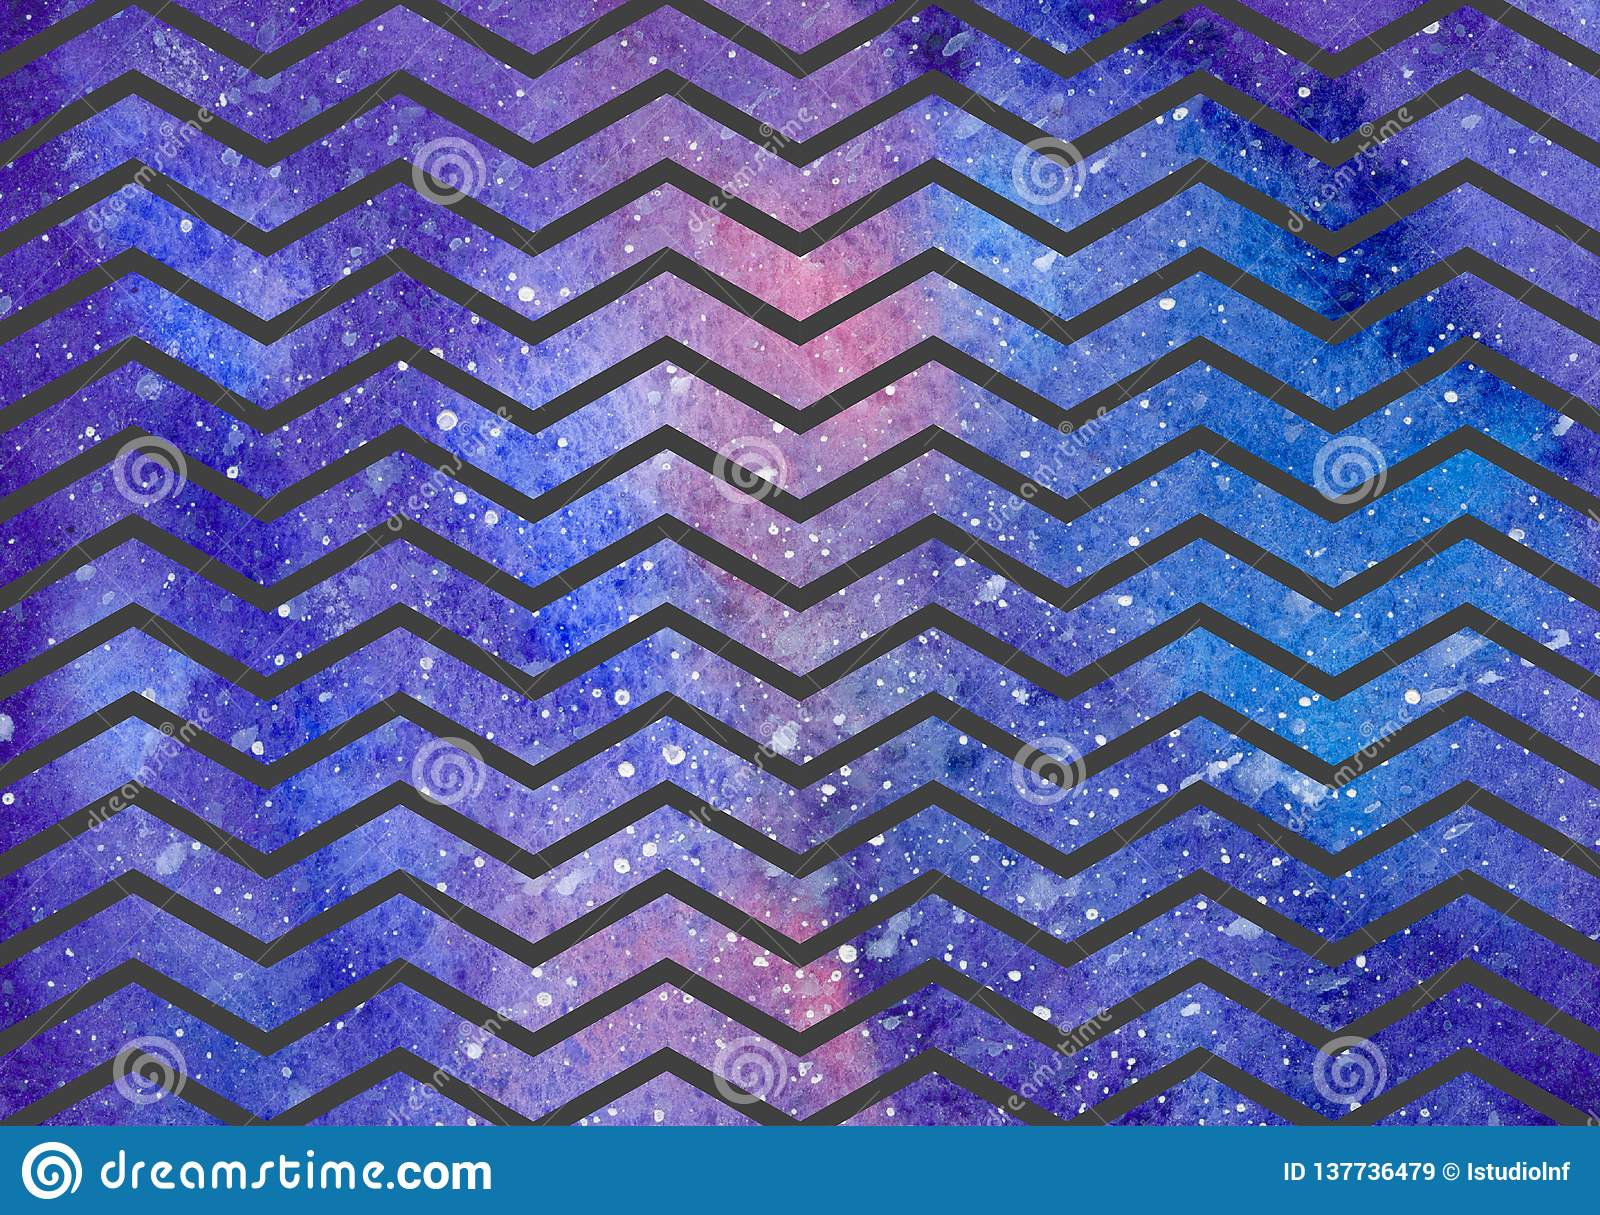 Waves pattern on space texture, abstract background